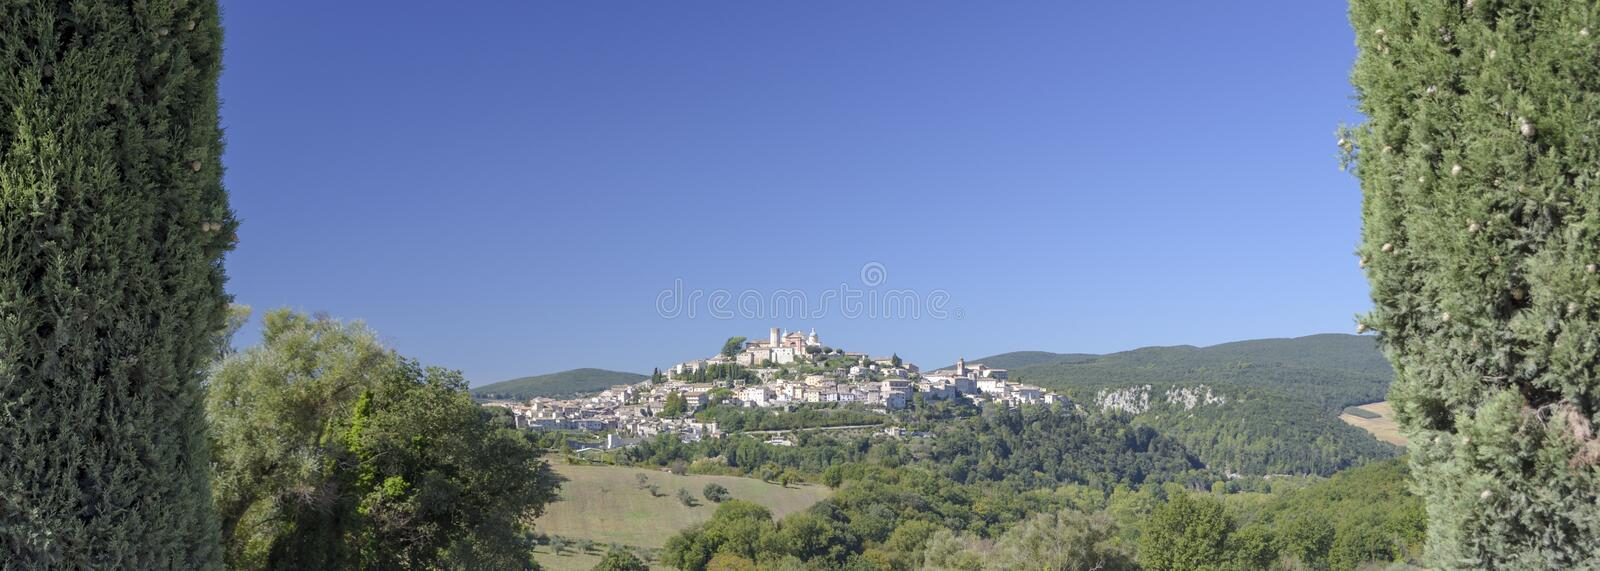 View from the characteristic Italian medieval village on the hill.Umbria, Amelia panorama royalty free stock photo